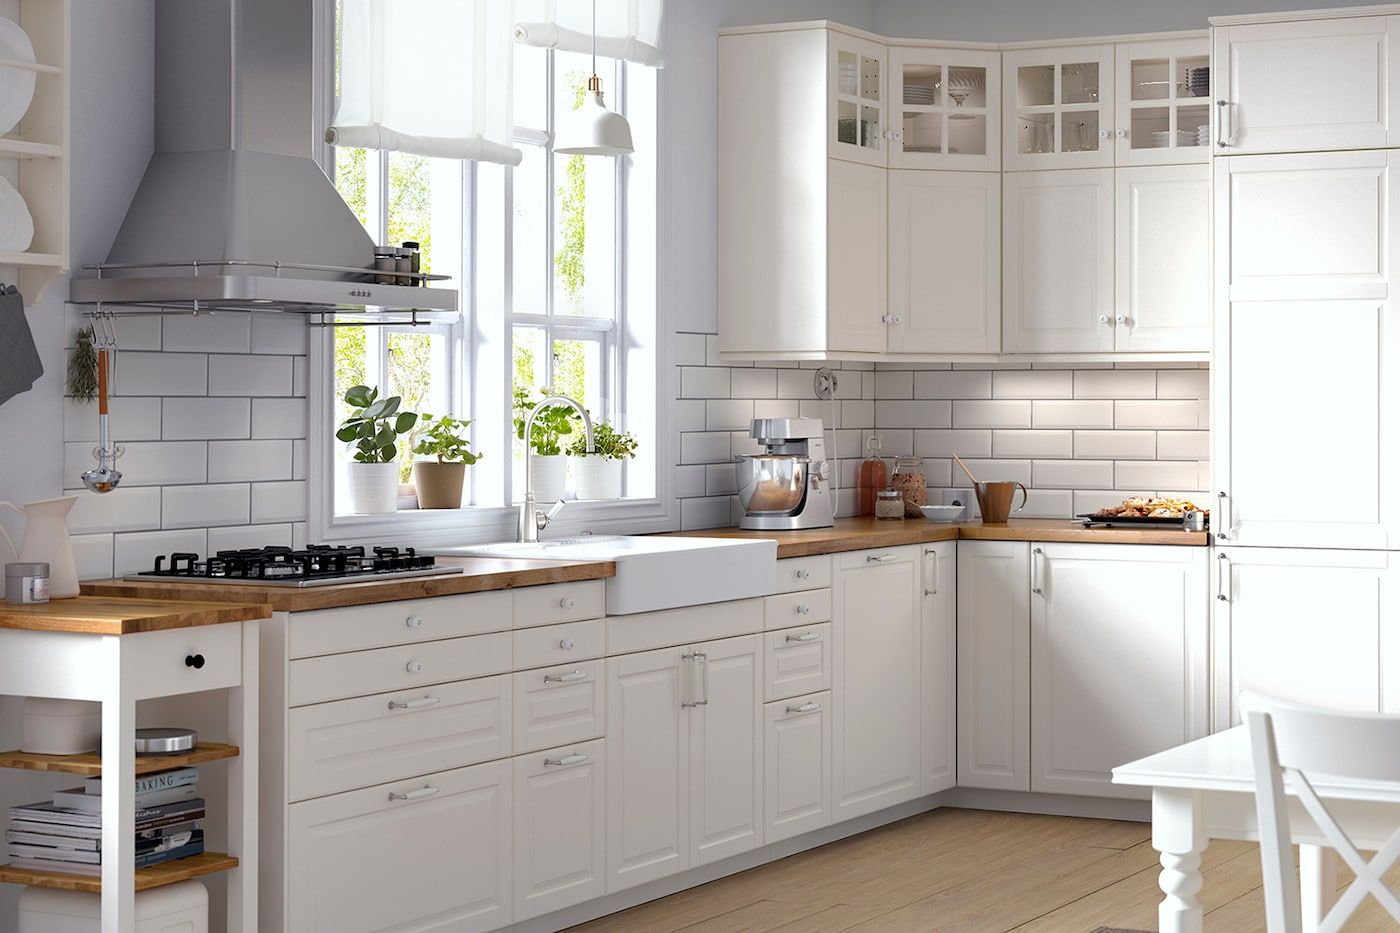 Ikea Off White Kitchen Cabinets Kök Bodbyn Off White Köksserie I Traditionell Stil